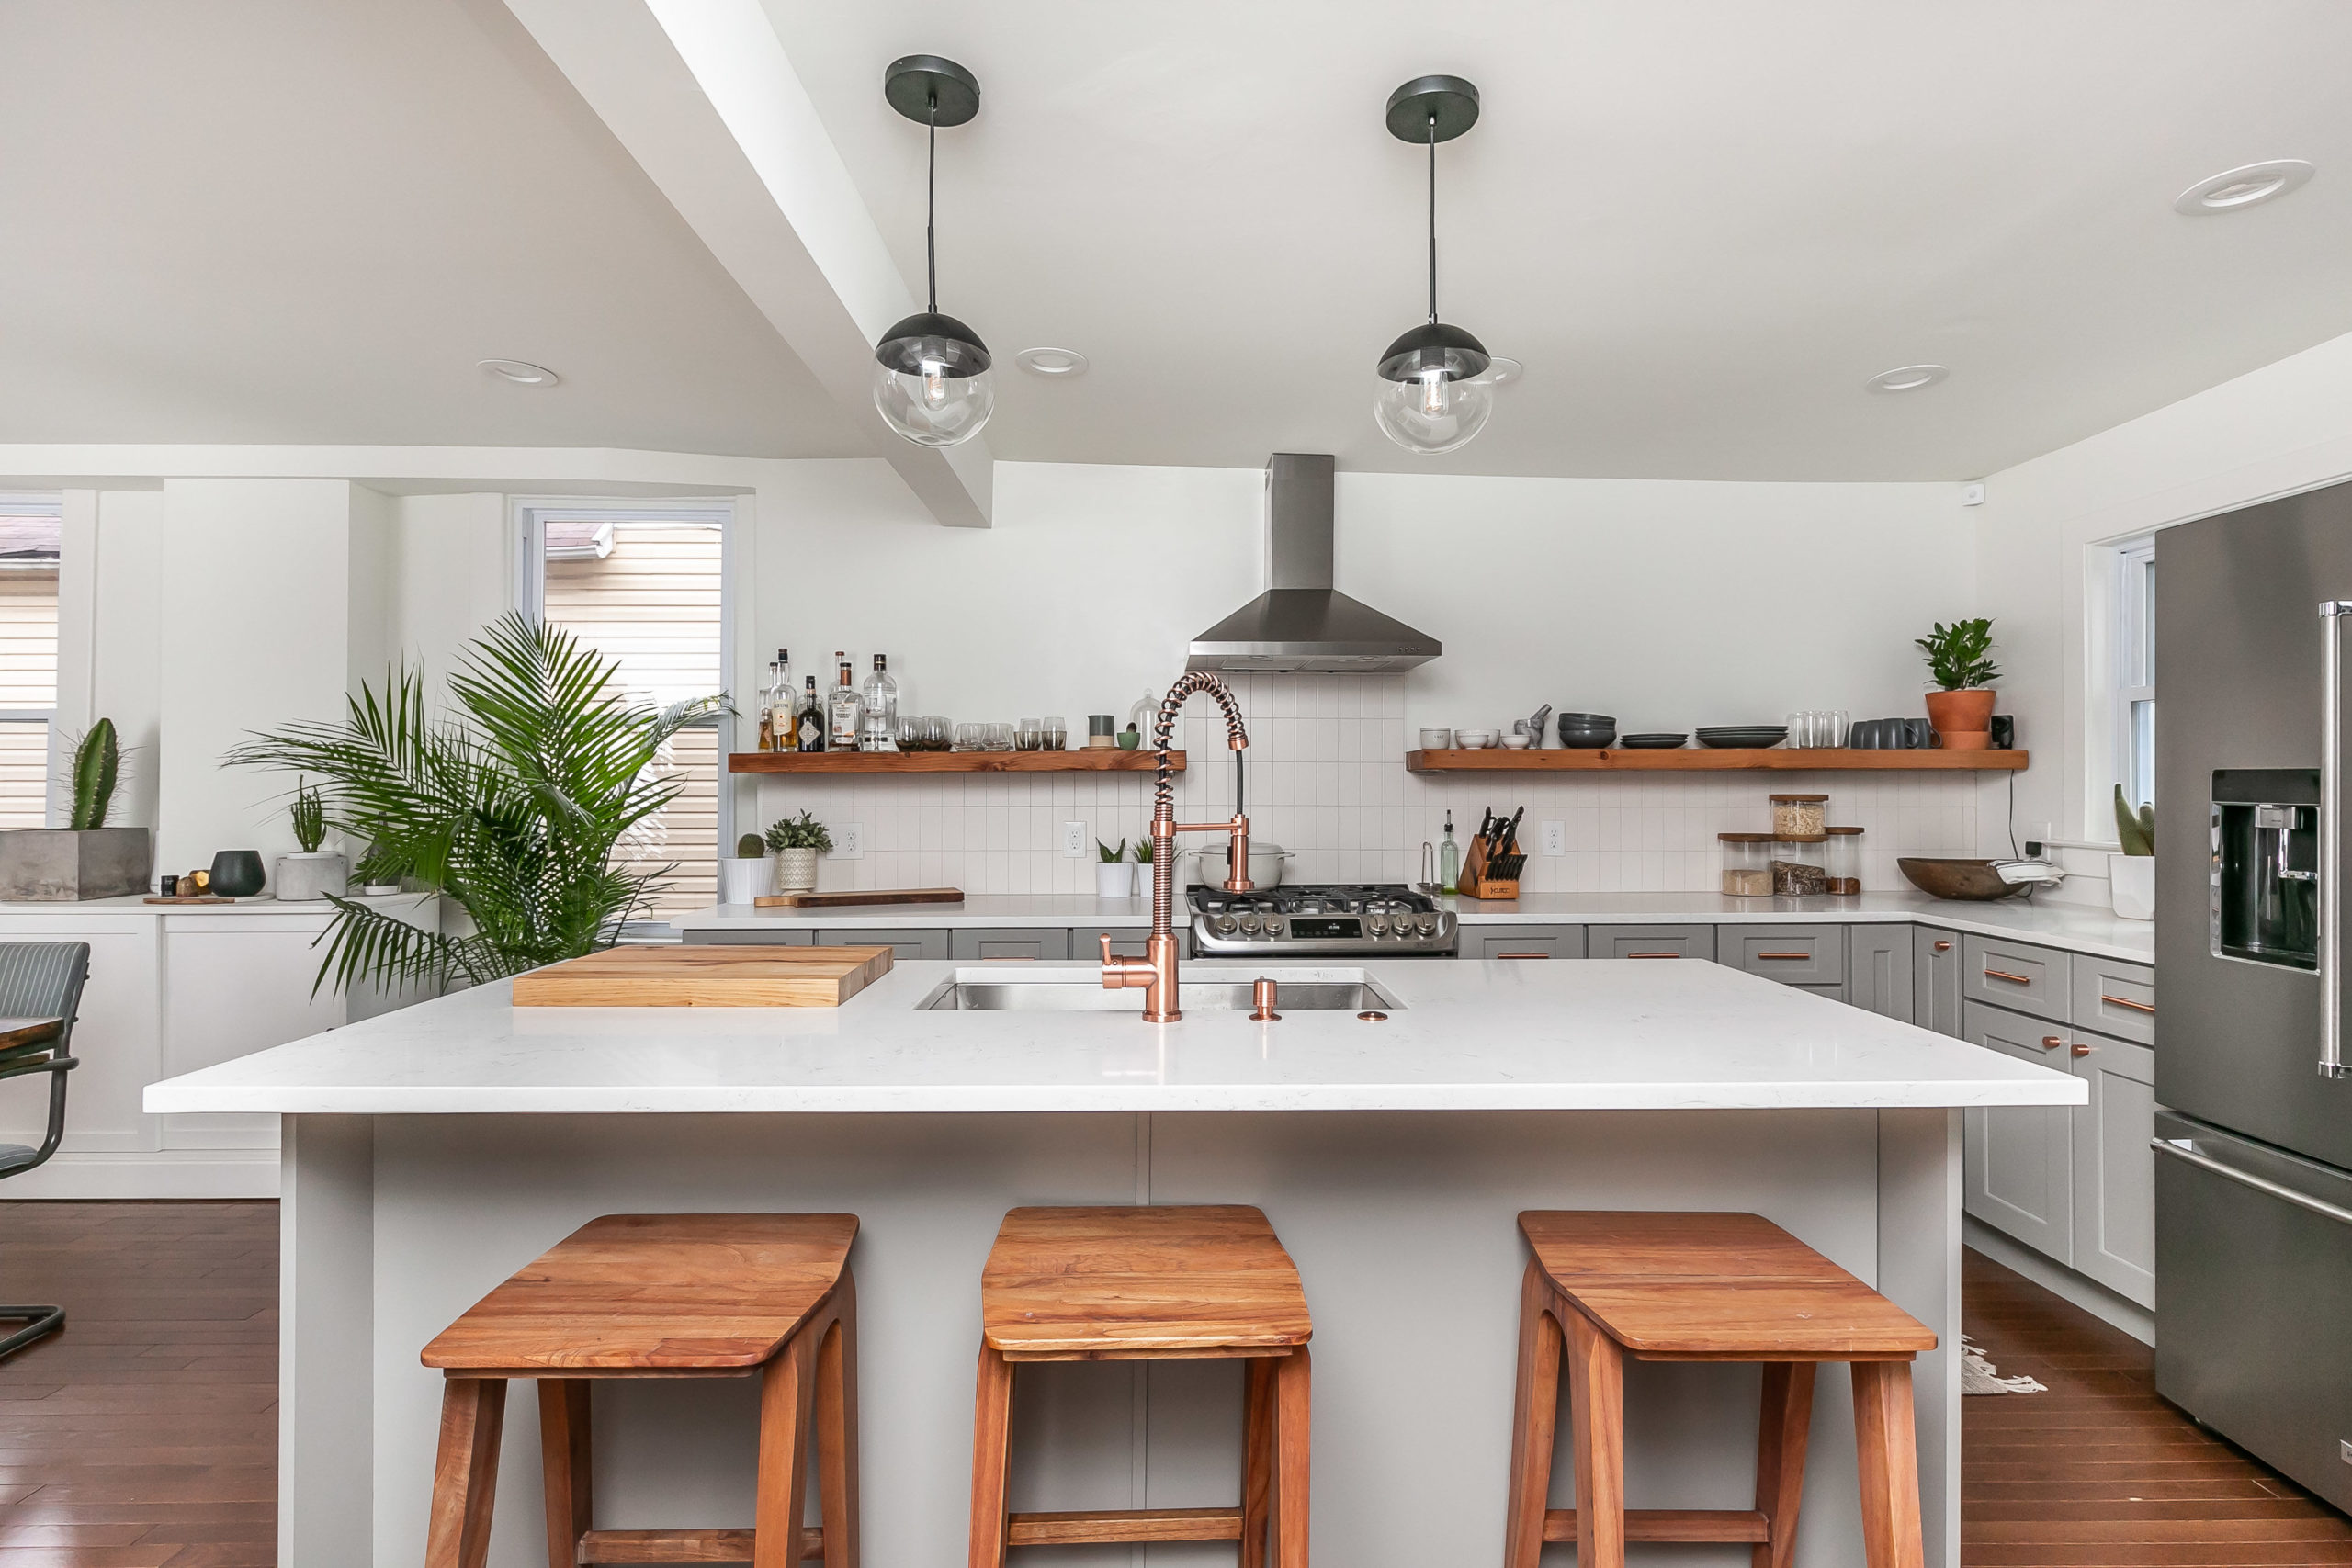 A kitchen remodel in a full home renovation by Byrd Design and Build